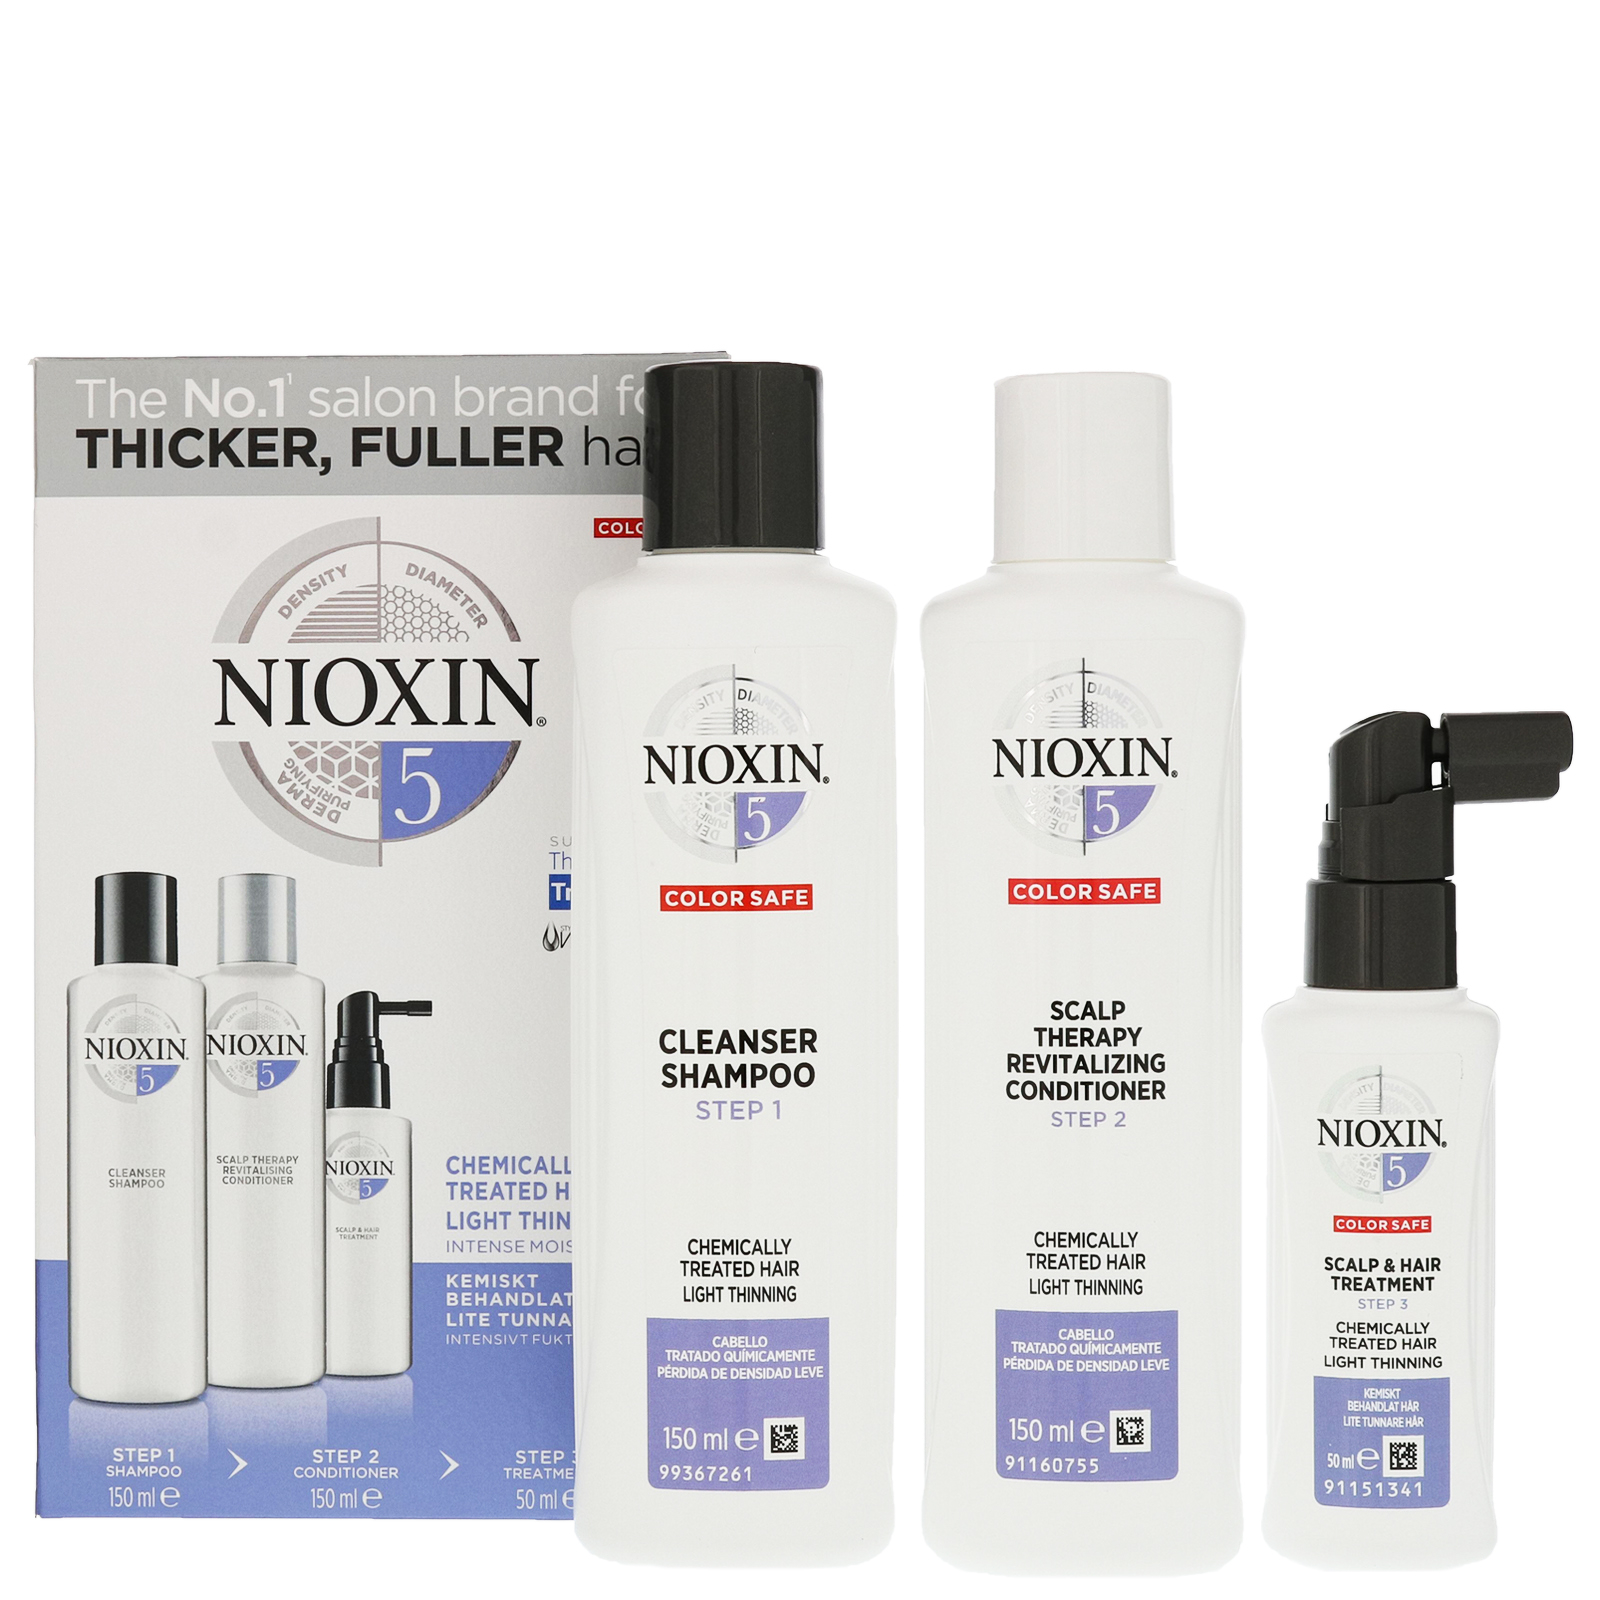 Nioxin 3D Care System  System 5, 3 Part System Kit For Chemically Treated Hair And Light Thinning